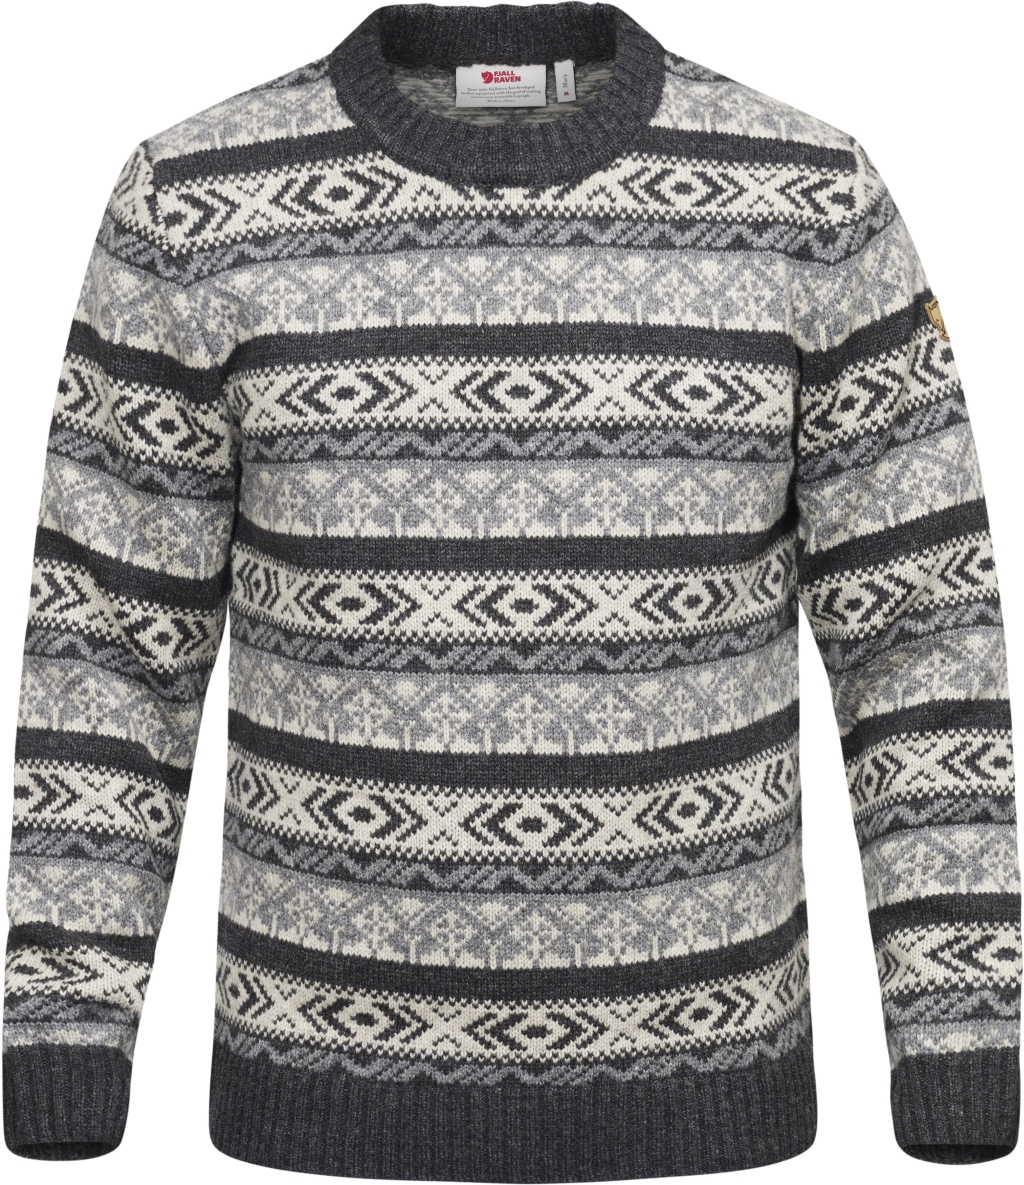 FjallRaven Ovik Folk Knit Sweater Dark Grey-30